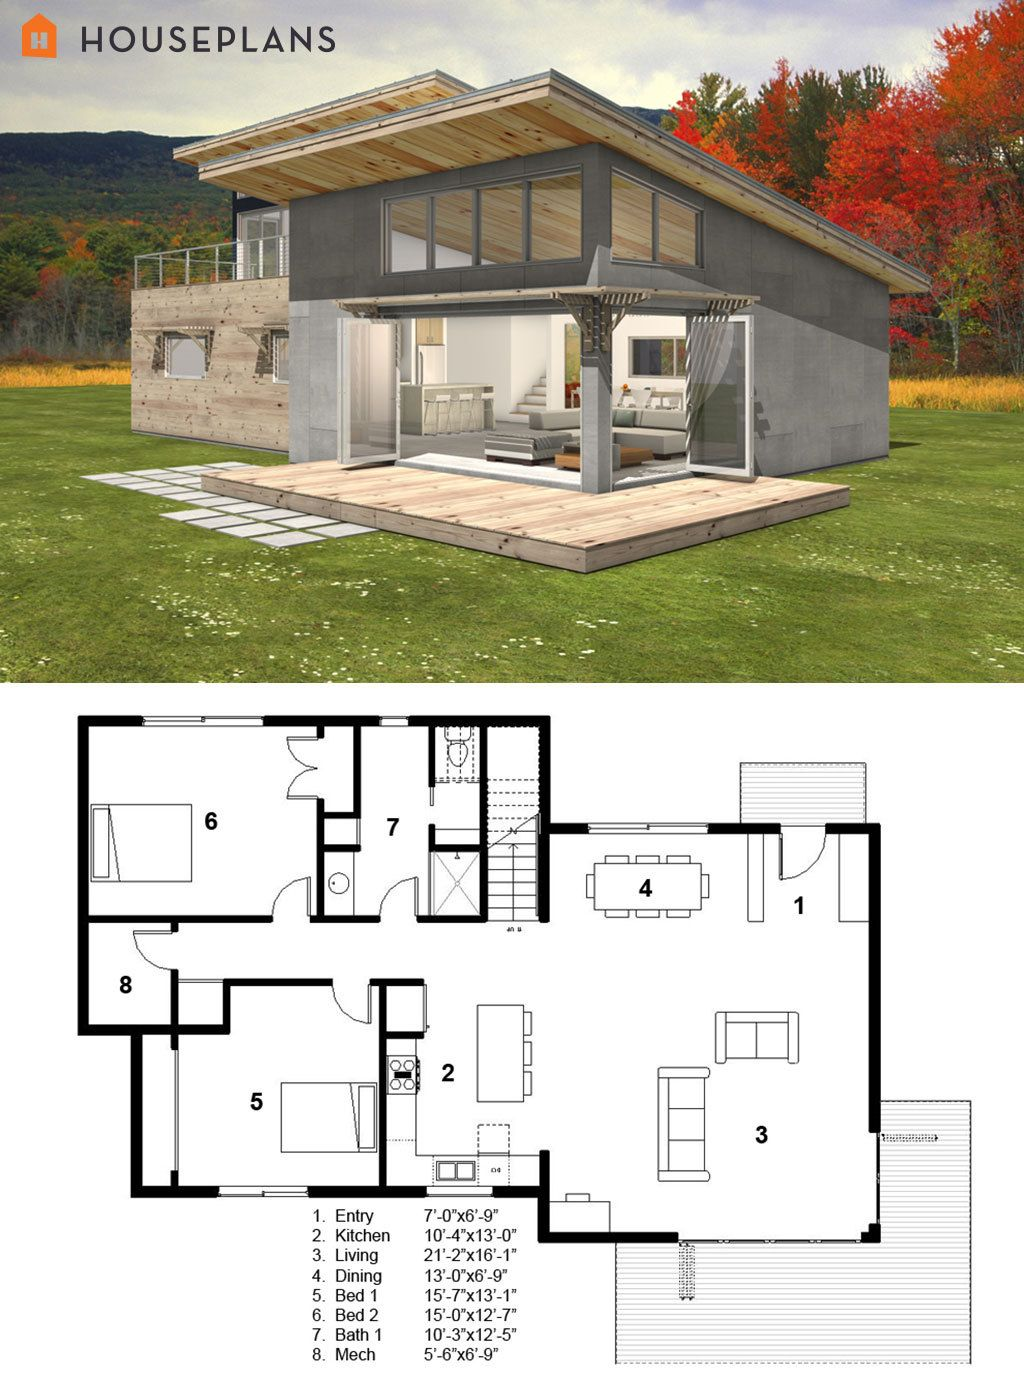 Modern style house plan 3 beds baths 2115 sq ft for Modern house plans 2015